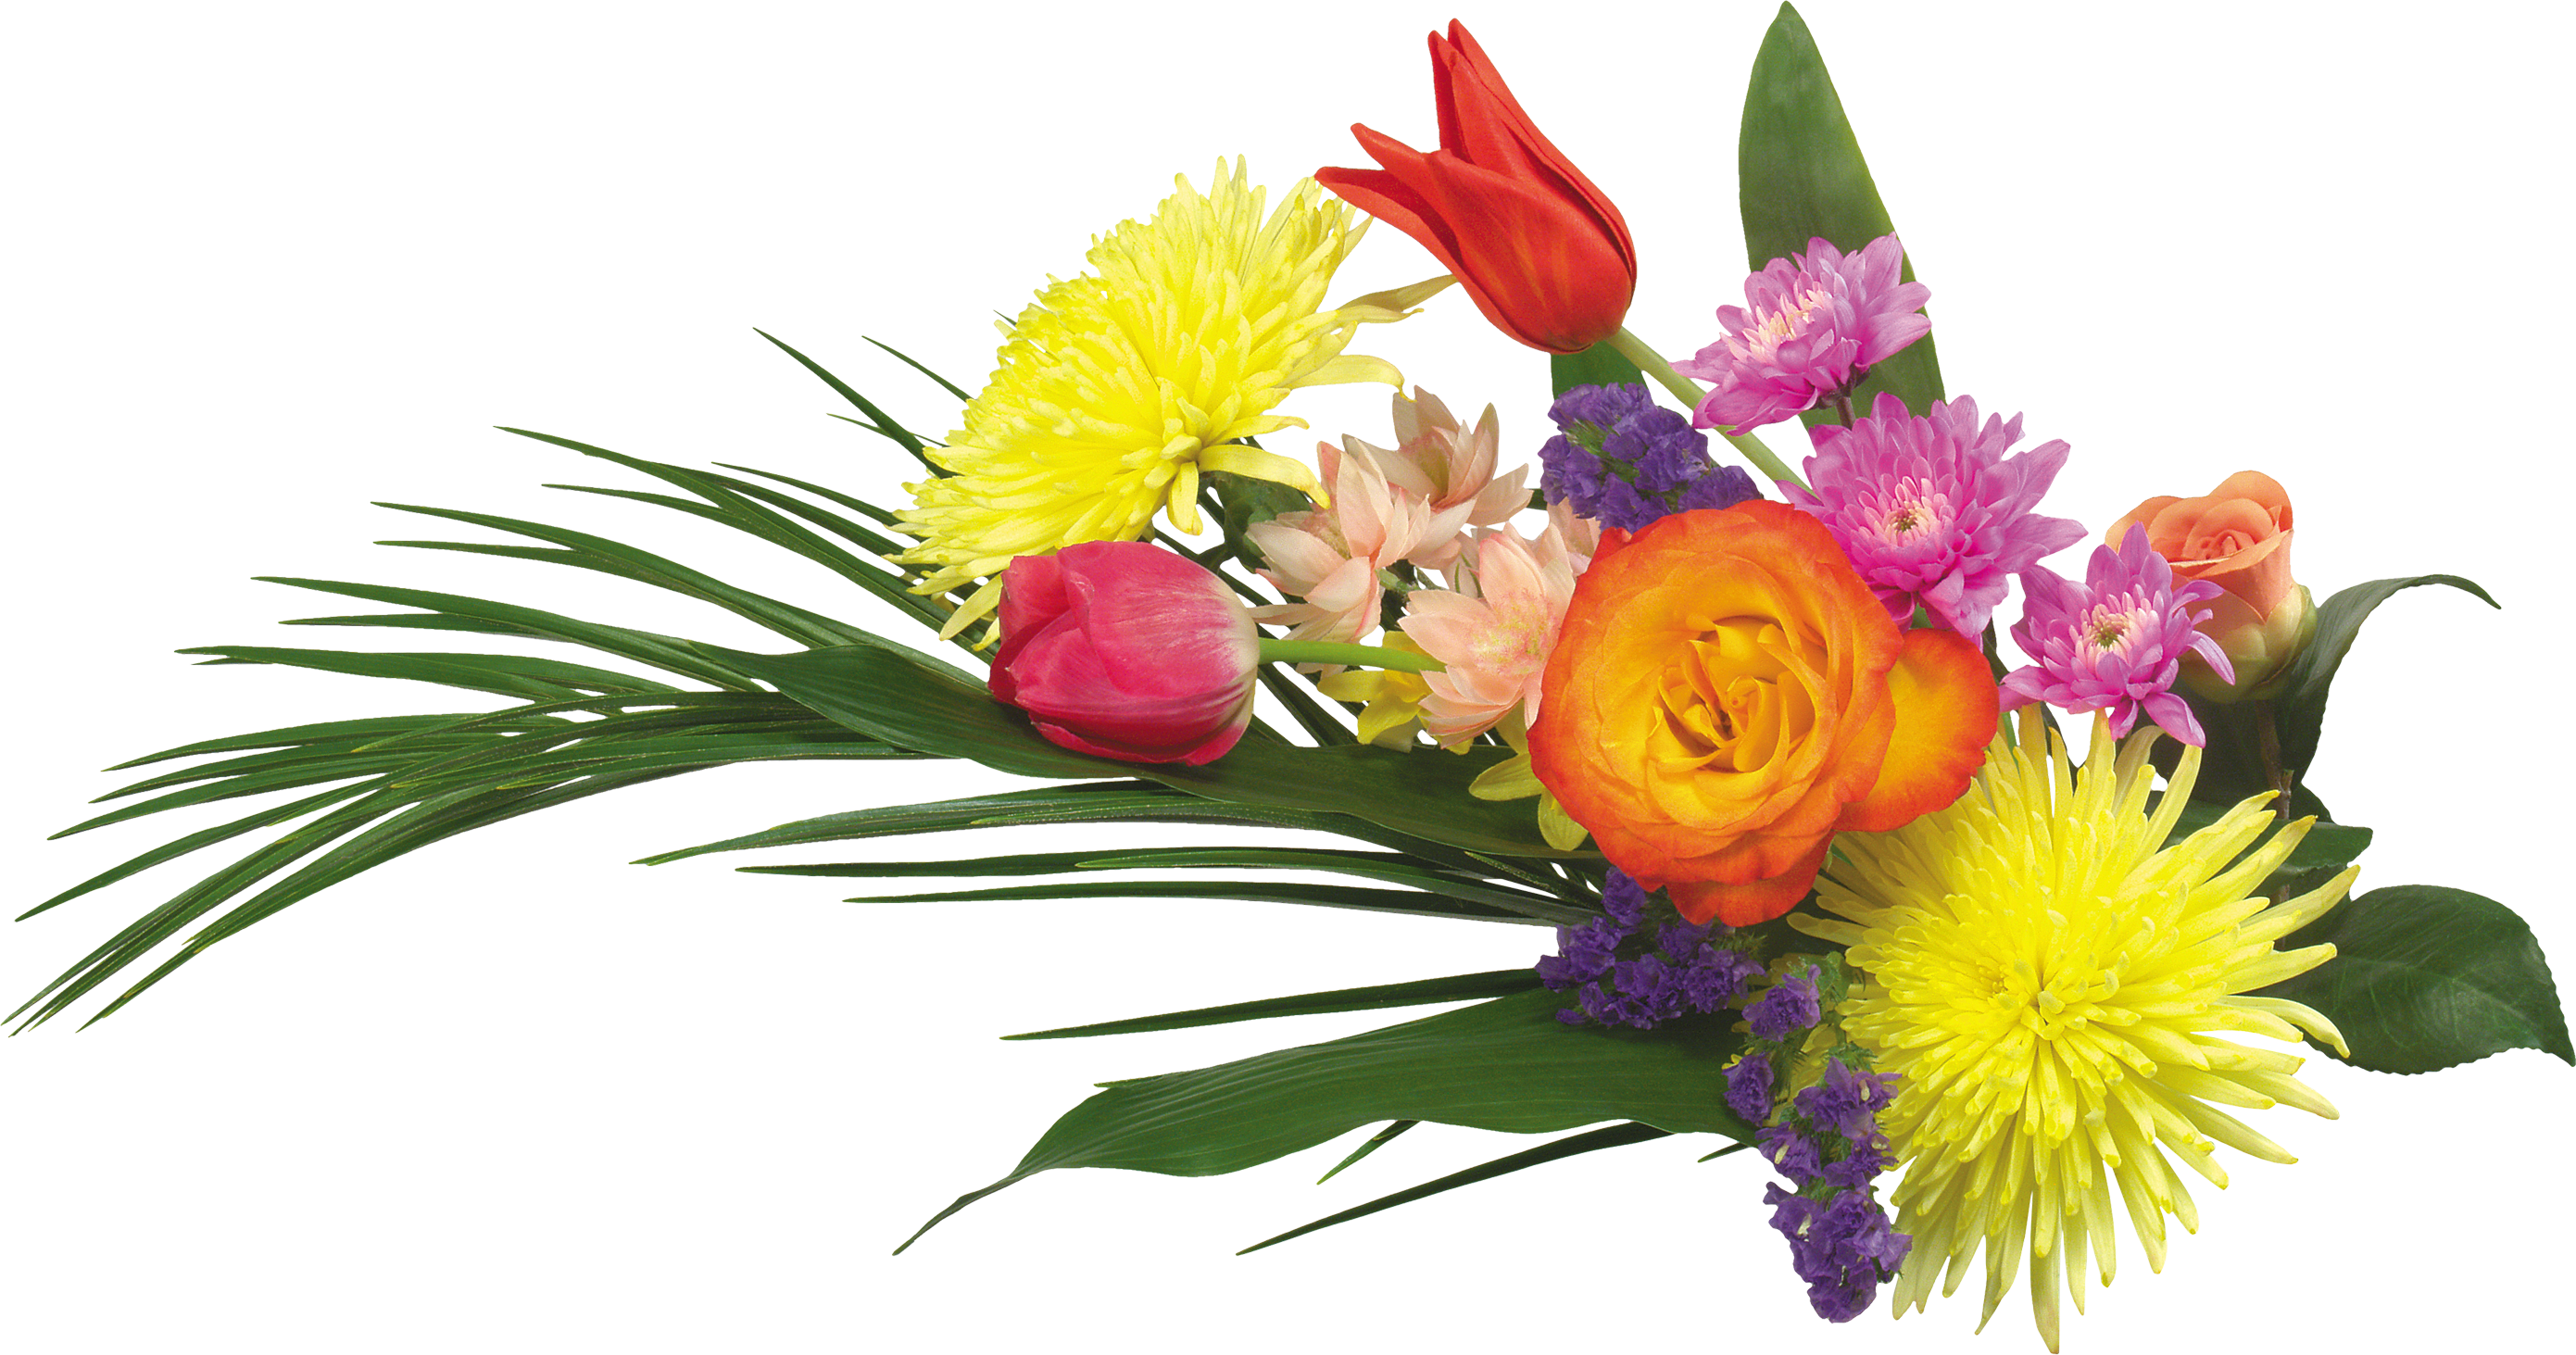 Flowers png. Bouquet